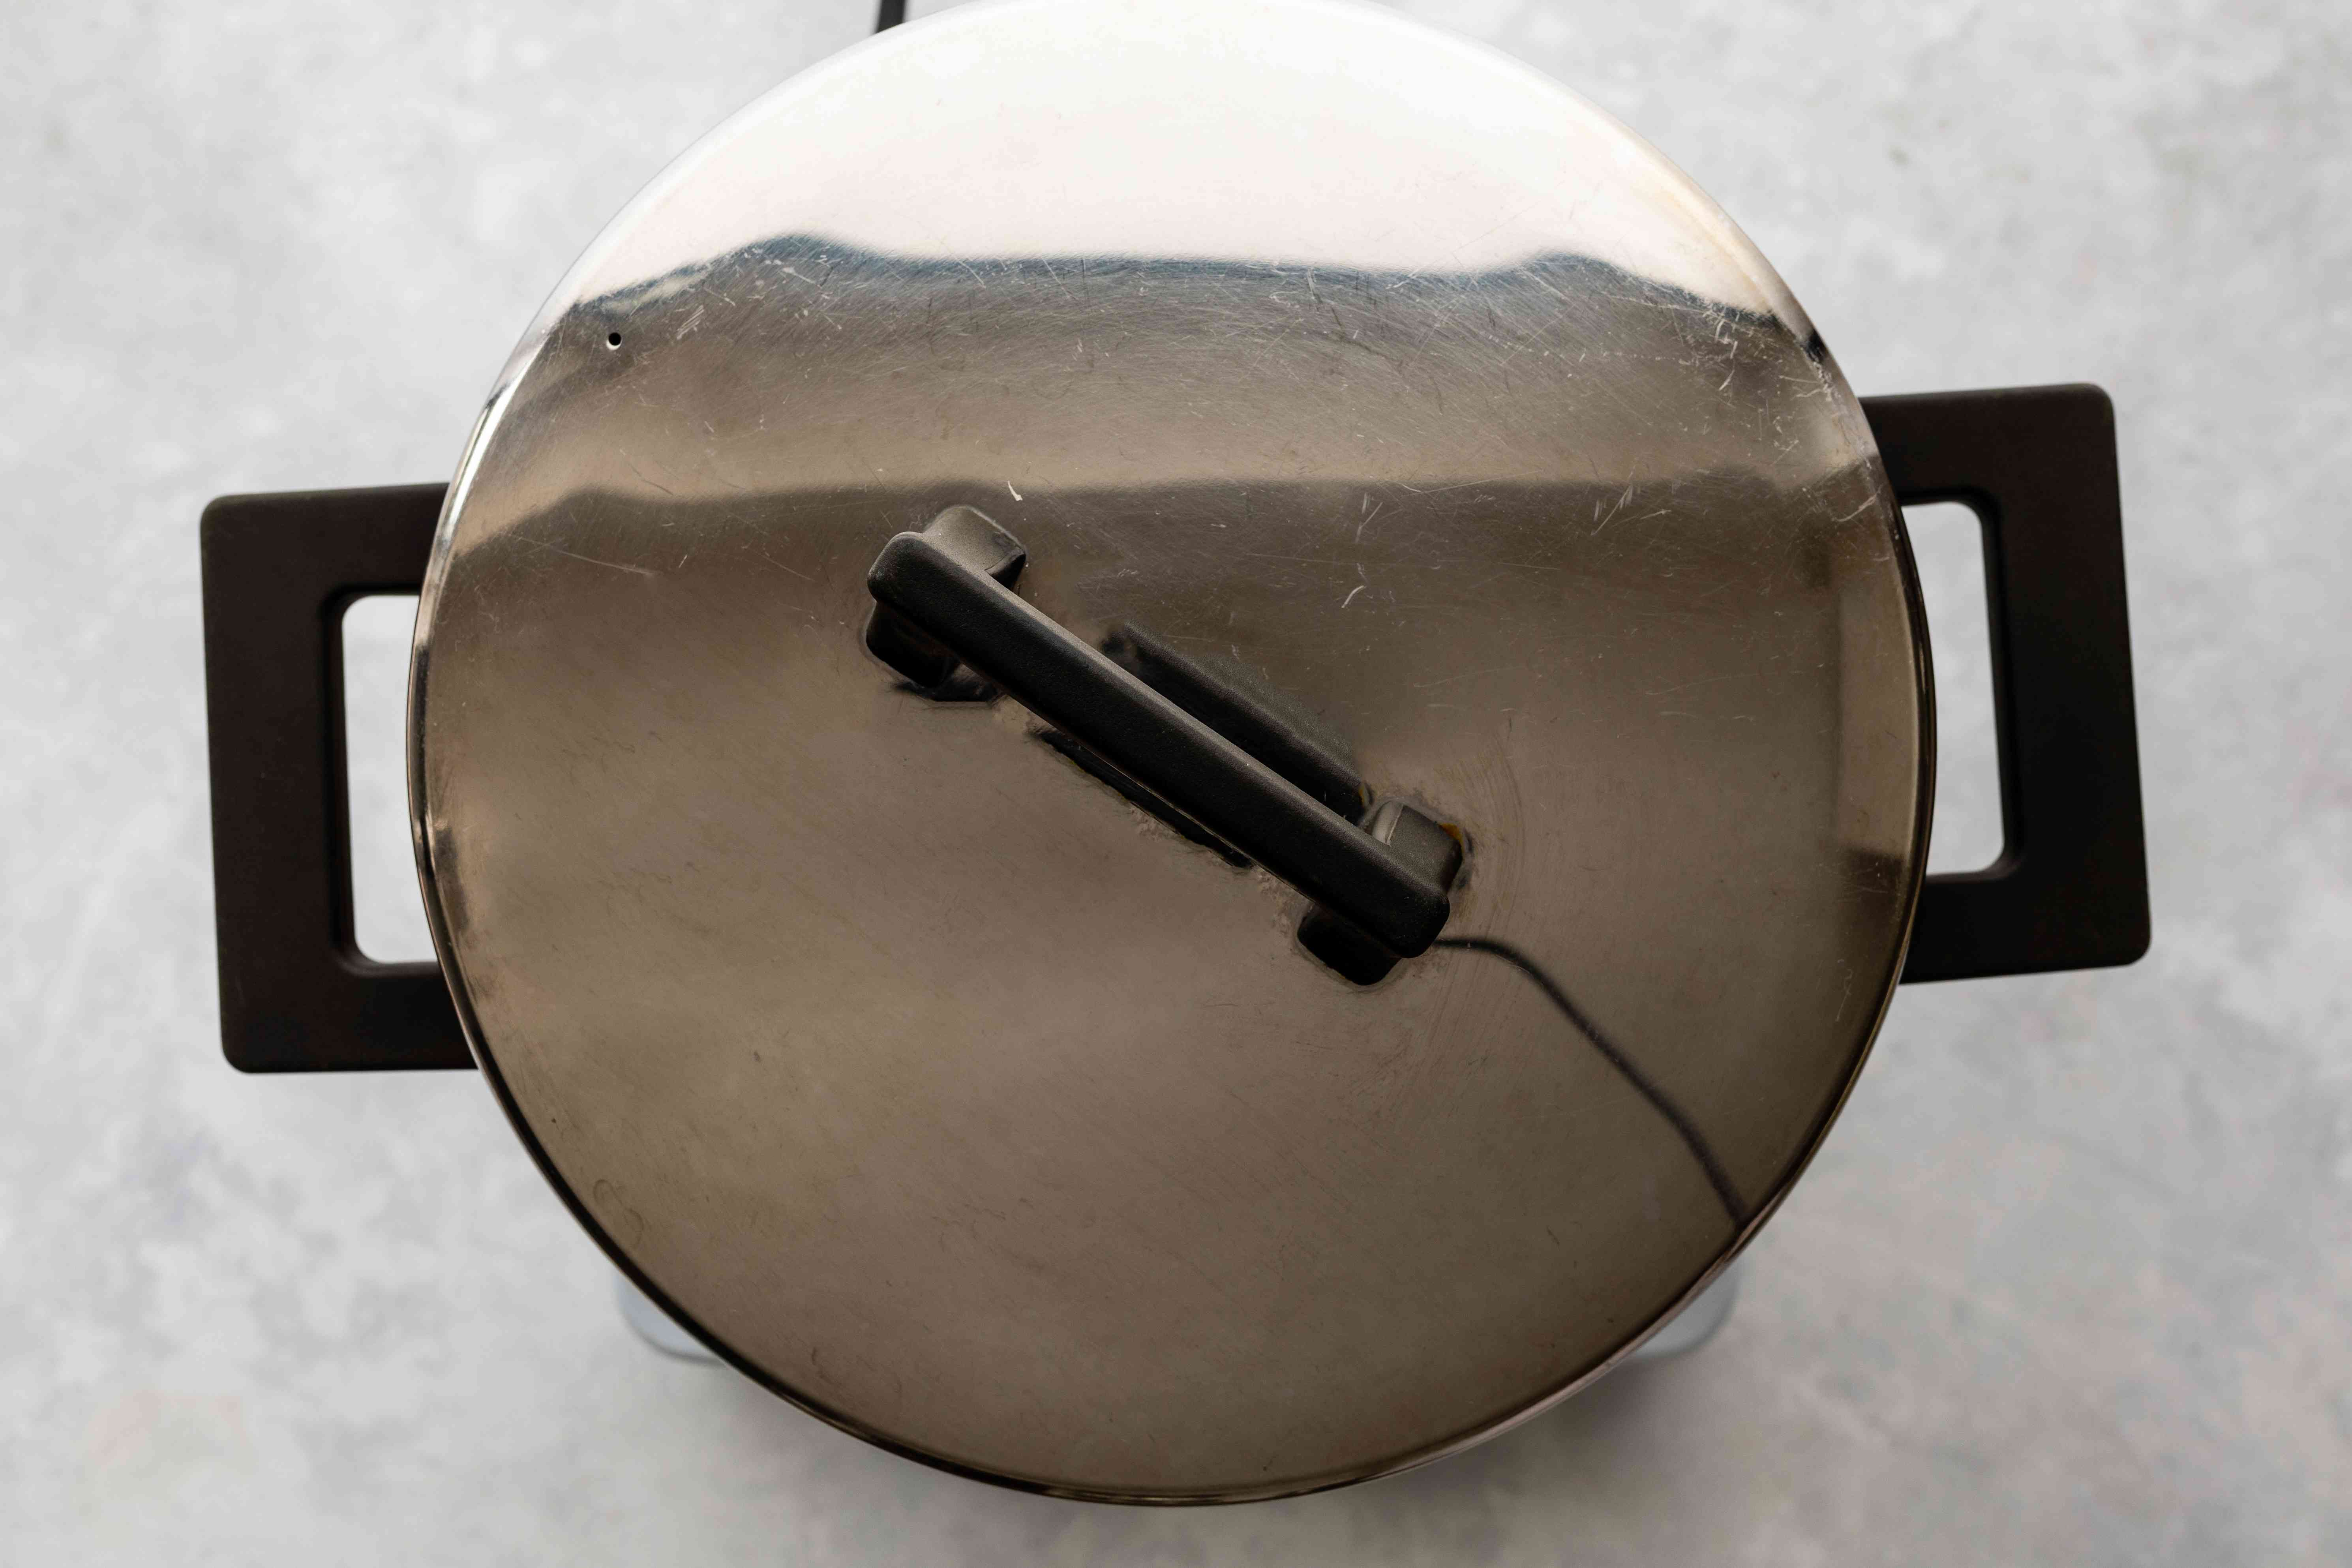 Place cover over saucepan